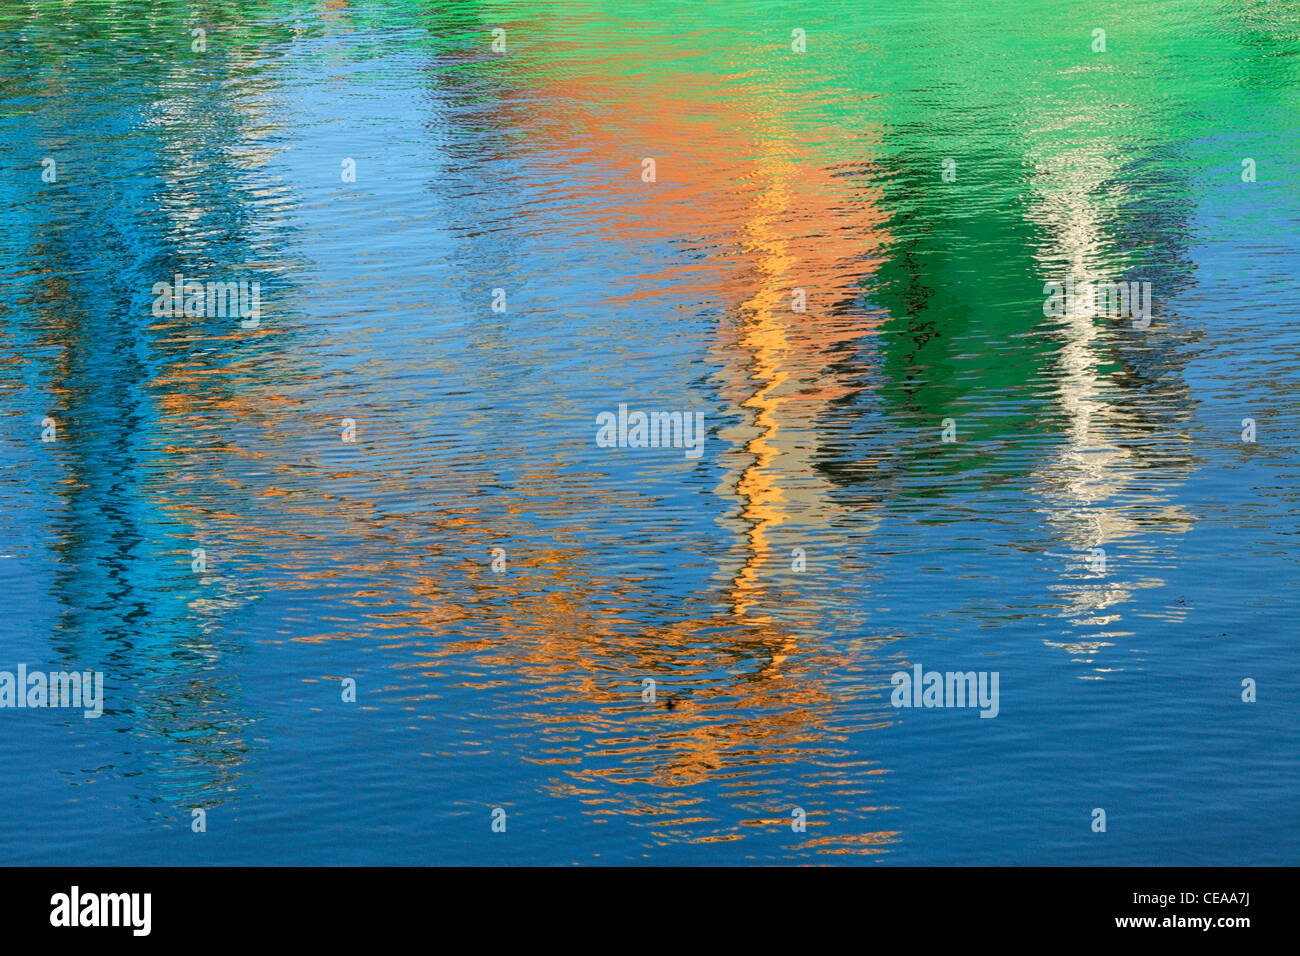 Reflections of a ship loading at Blythe Quay make for a brightly colored abstract - Stock Image